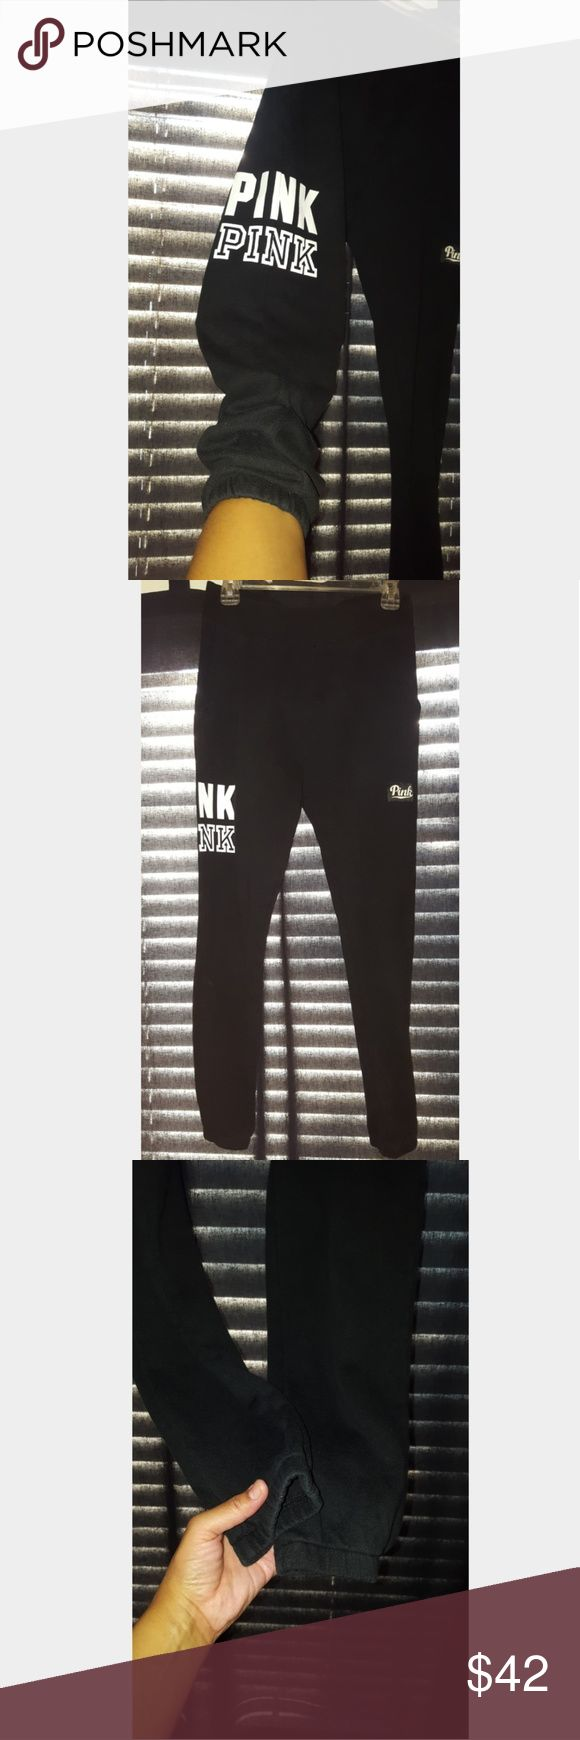 In EUC VS Pink Joggers!!! In Excellent Used Condition #Victoria'sSecret #Pink #Joggers No flaws. No rips, stains, or holes!!! Super Cute These Are!!! Thank you For Looking!!!  Need help getting styled? Ask! I'm here to help. Thank you! PINK Victoria's Secret Pants Track Pants & Joggers